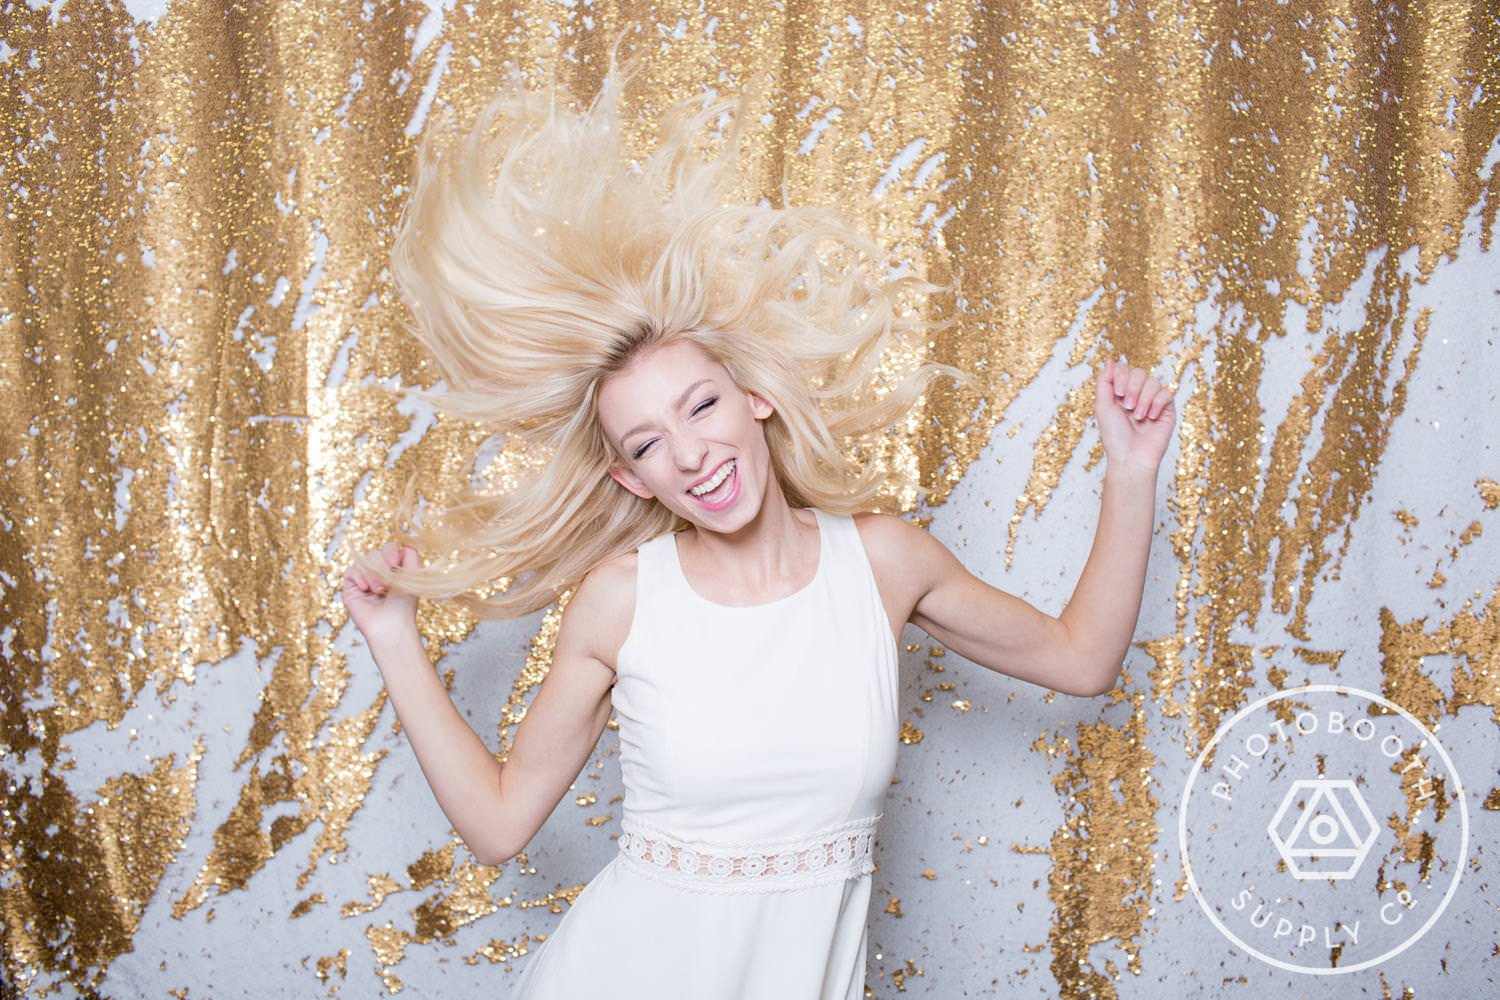 White-and-Gold-Colored-Mermaid-Reversible-Sequin-Backdrop-001@2x.progressive-2-min.JPG